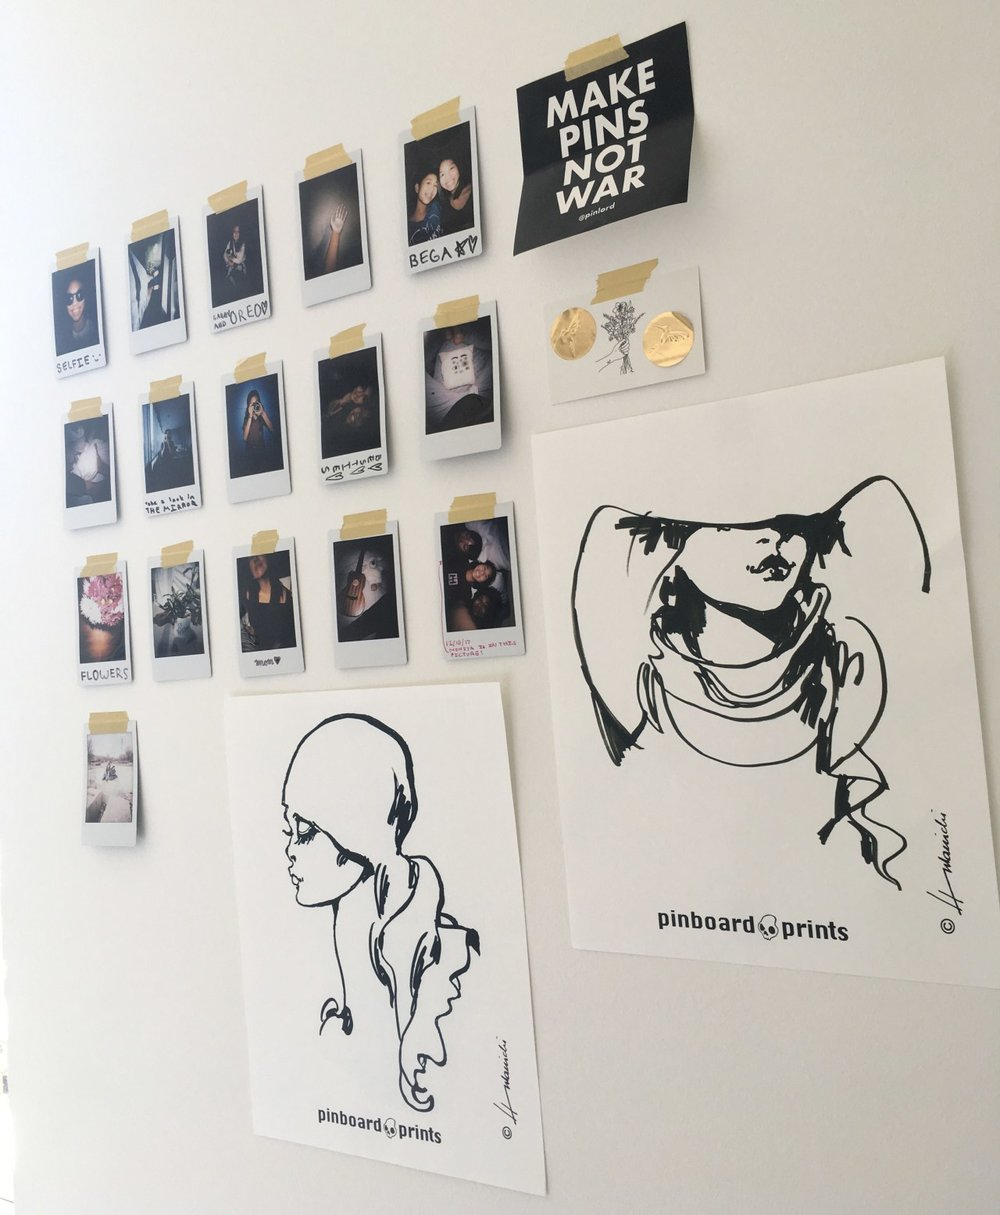 How one student used Barbara's prints to decorate her room